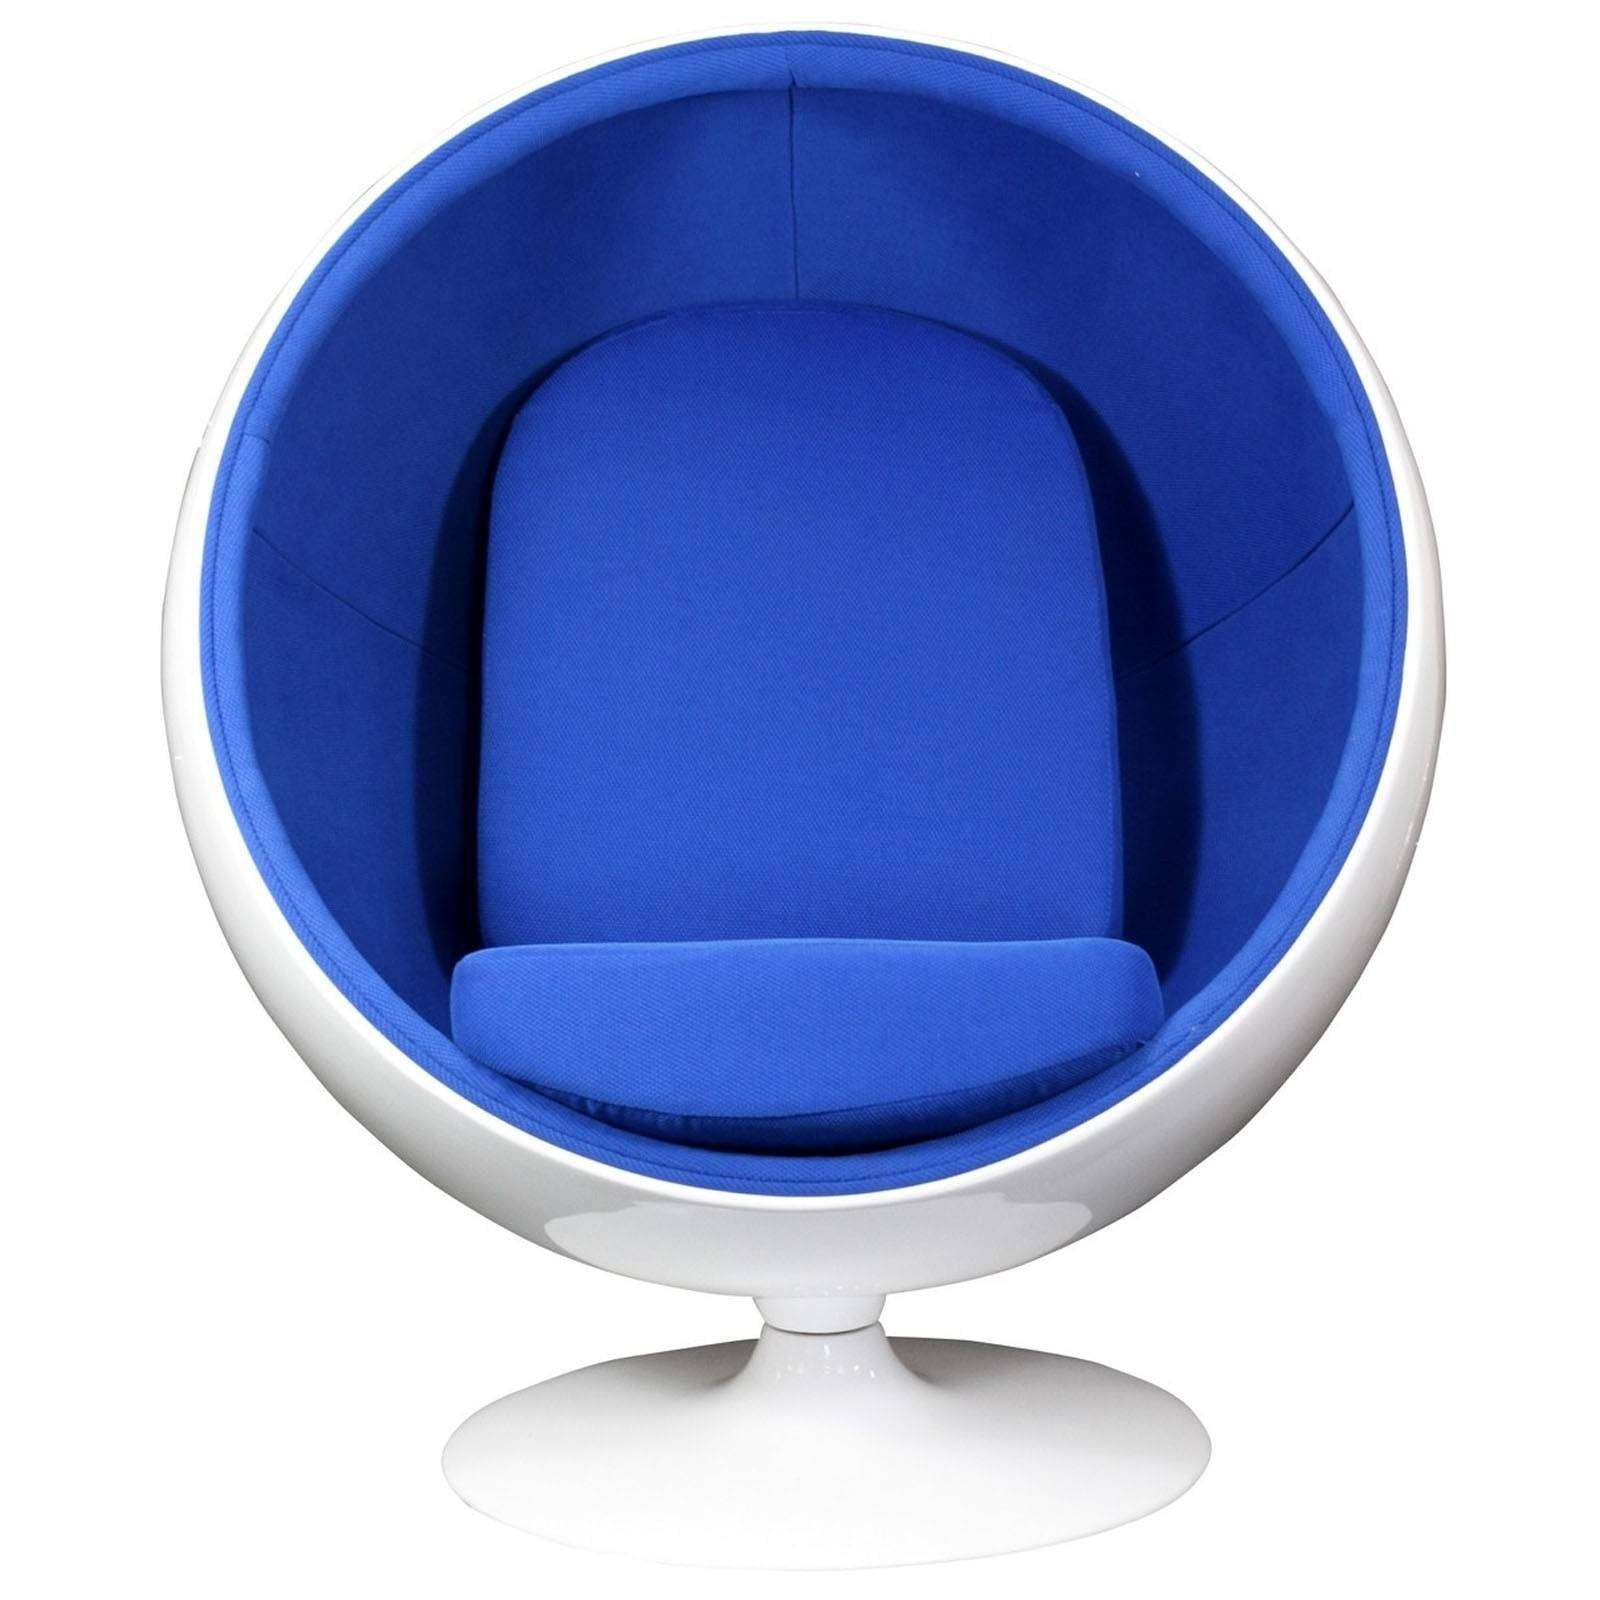 knoll spark chair review back support posture eero aarnio style ball